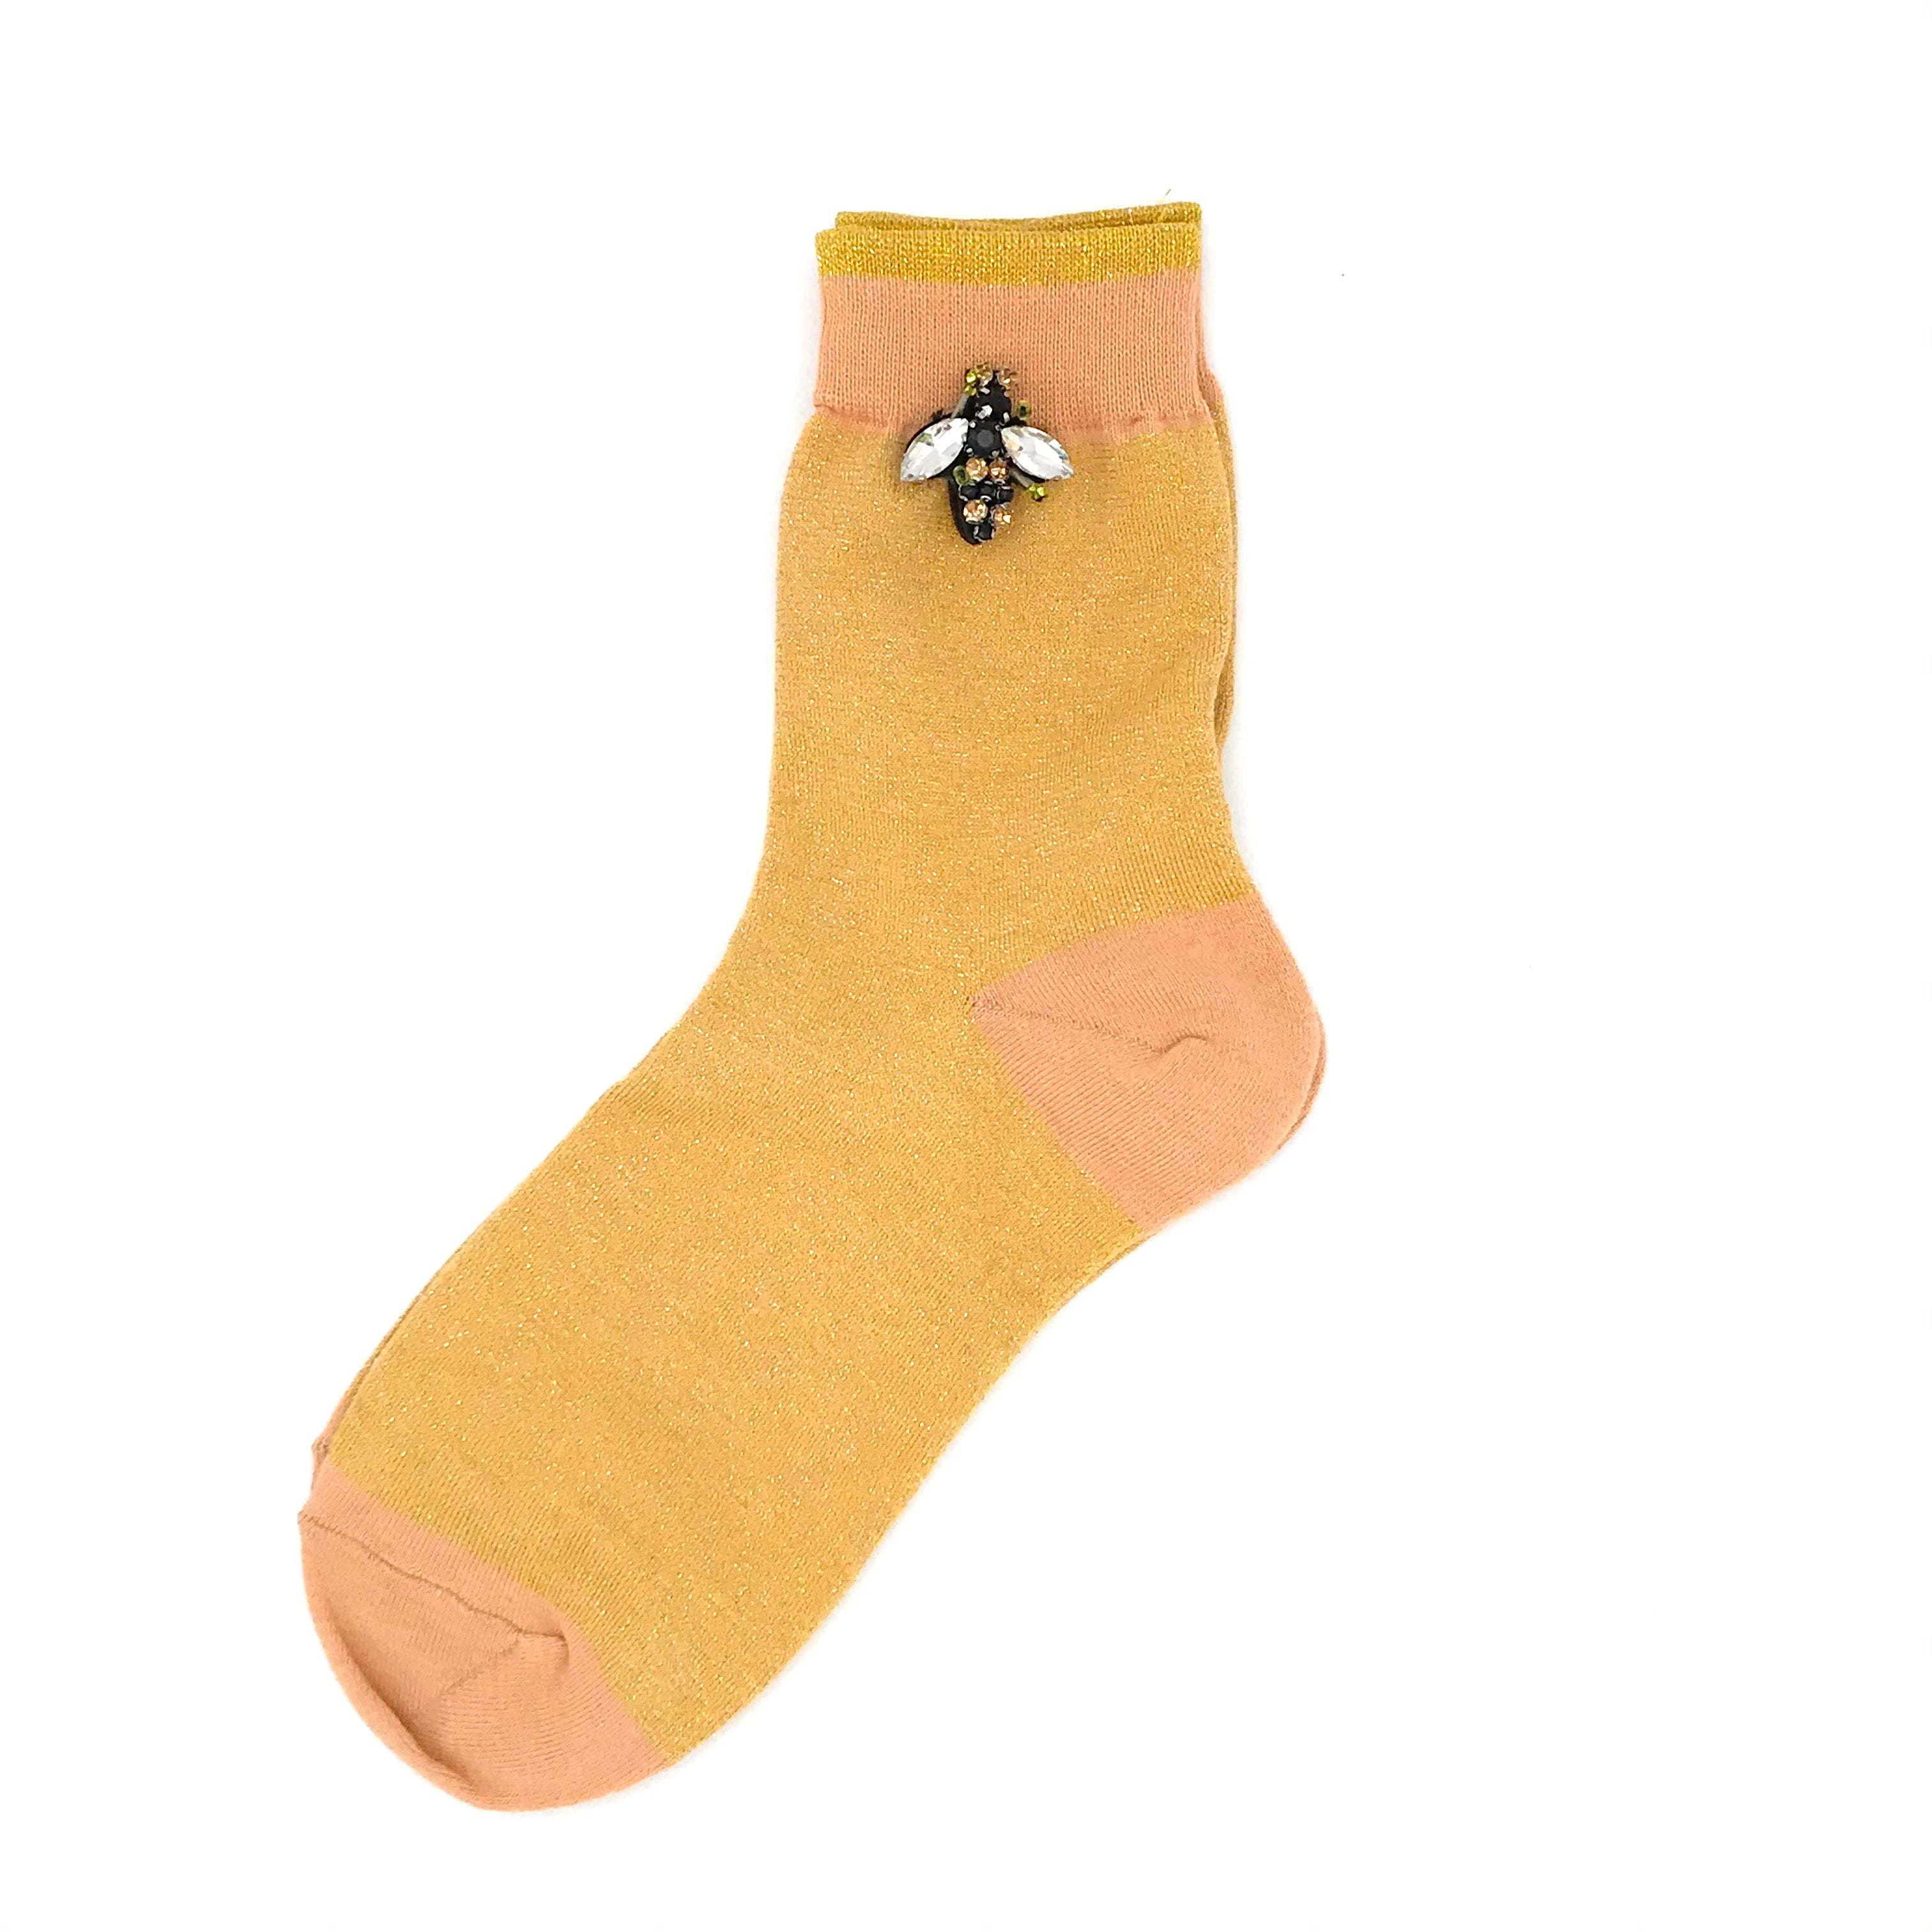 Tokyo bright socks with or without a bee pin